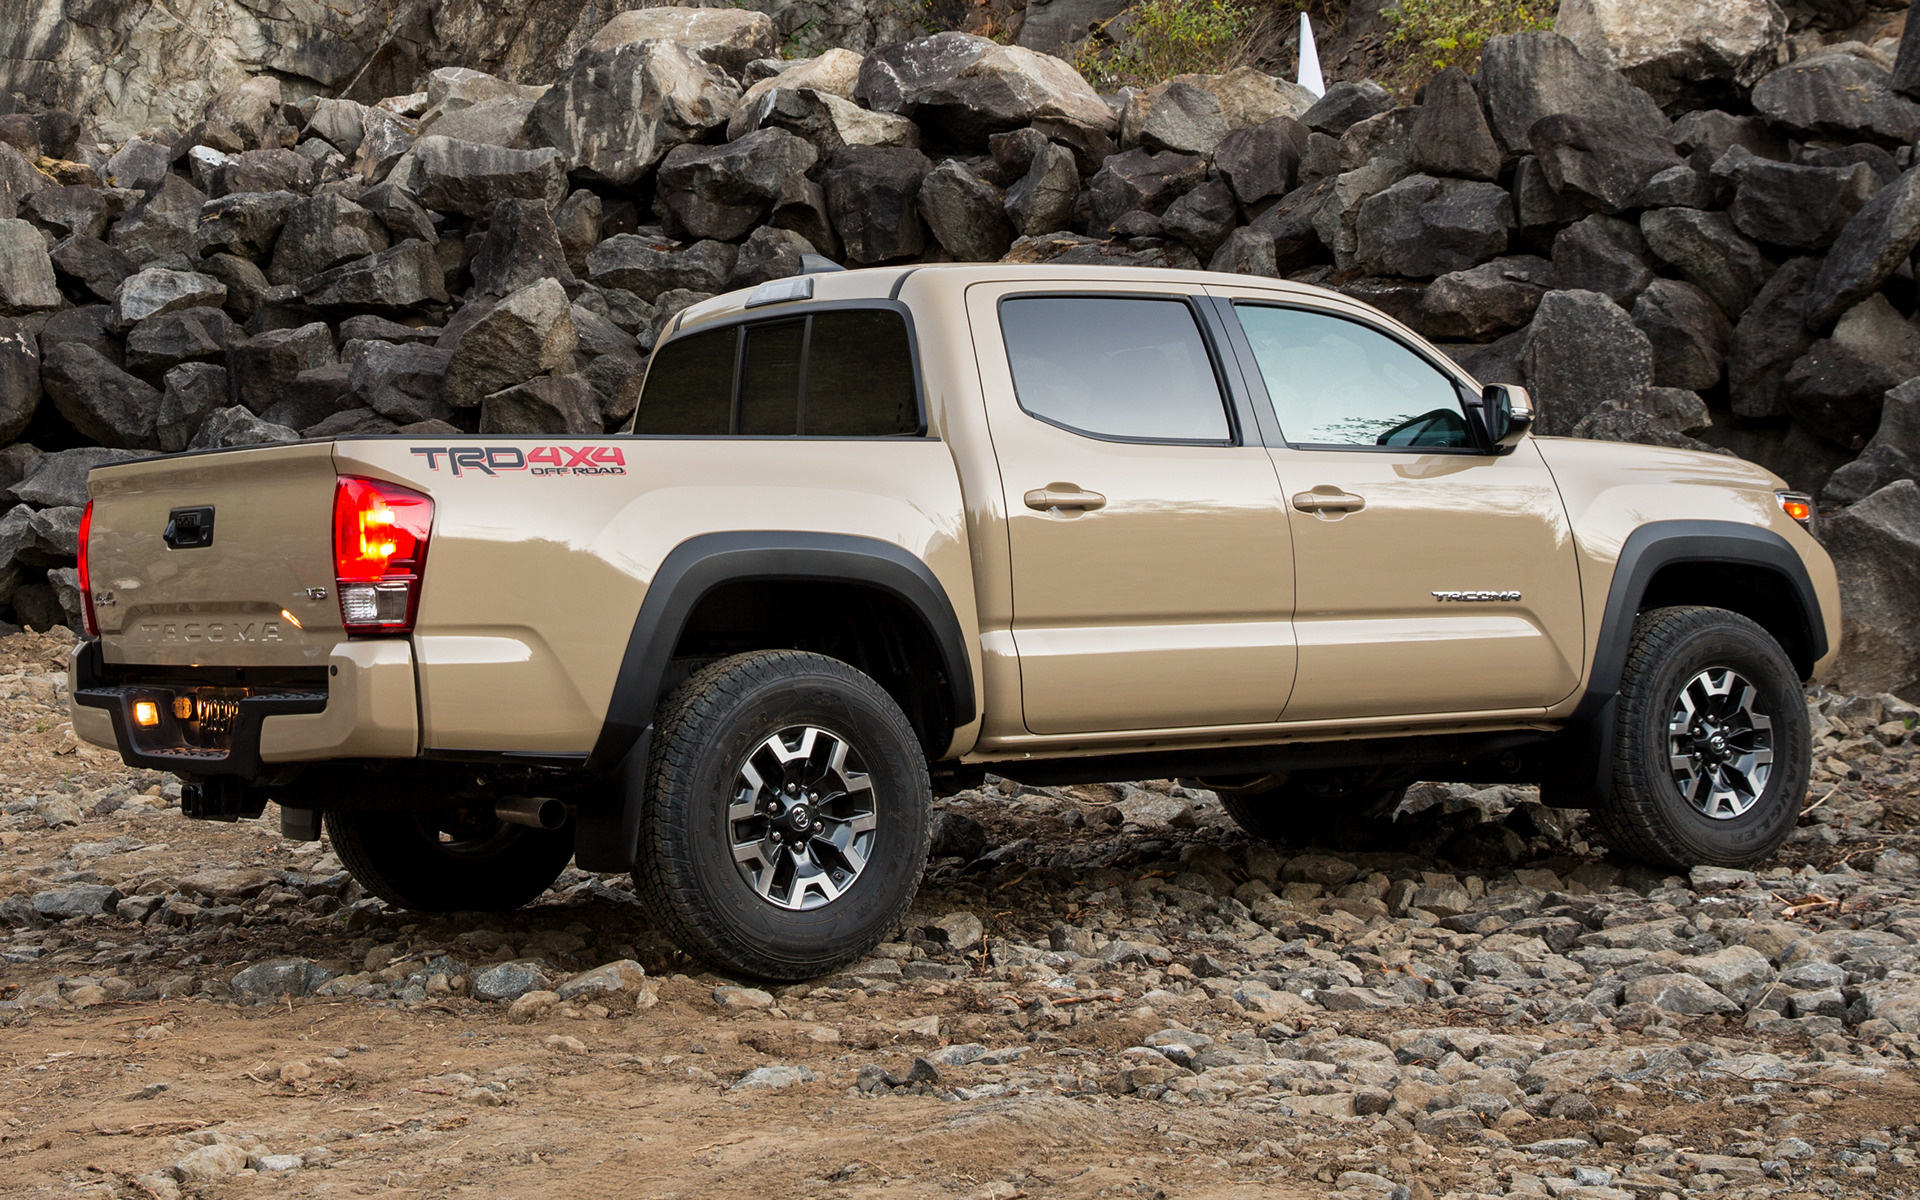 Toyota Tacoma TRD Off Road Double Cab 2016 Wallpapers and HD Images 1920x1200